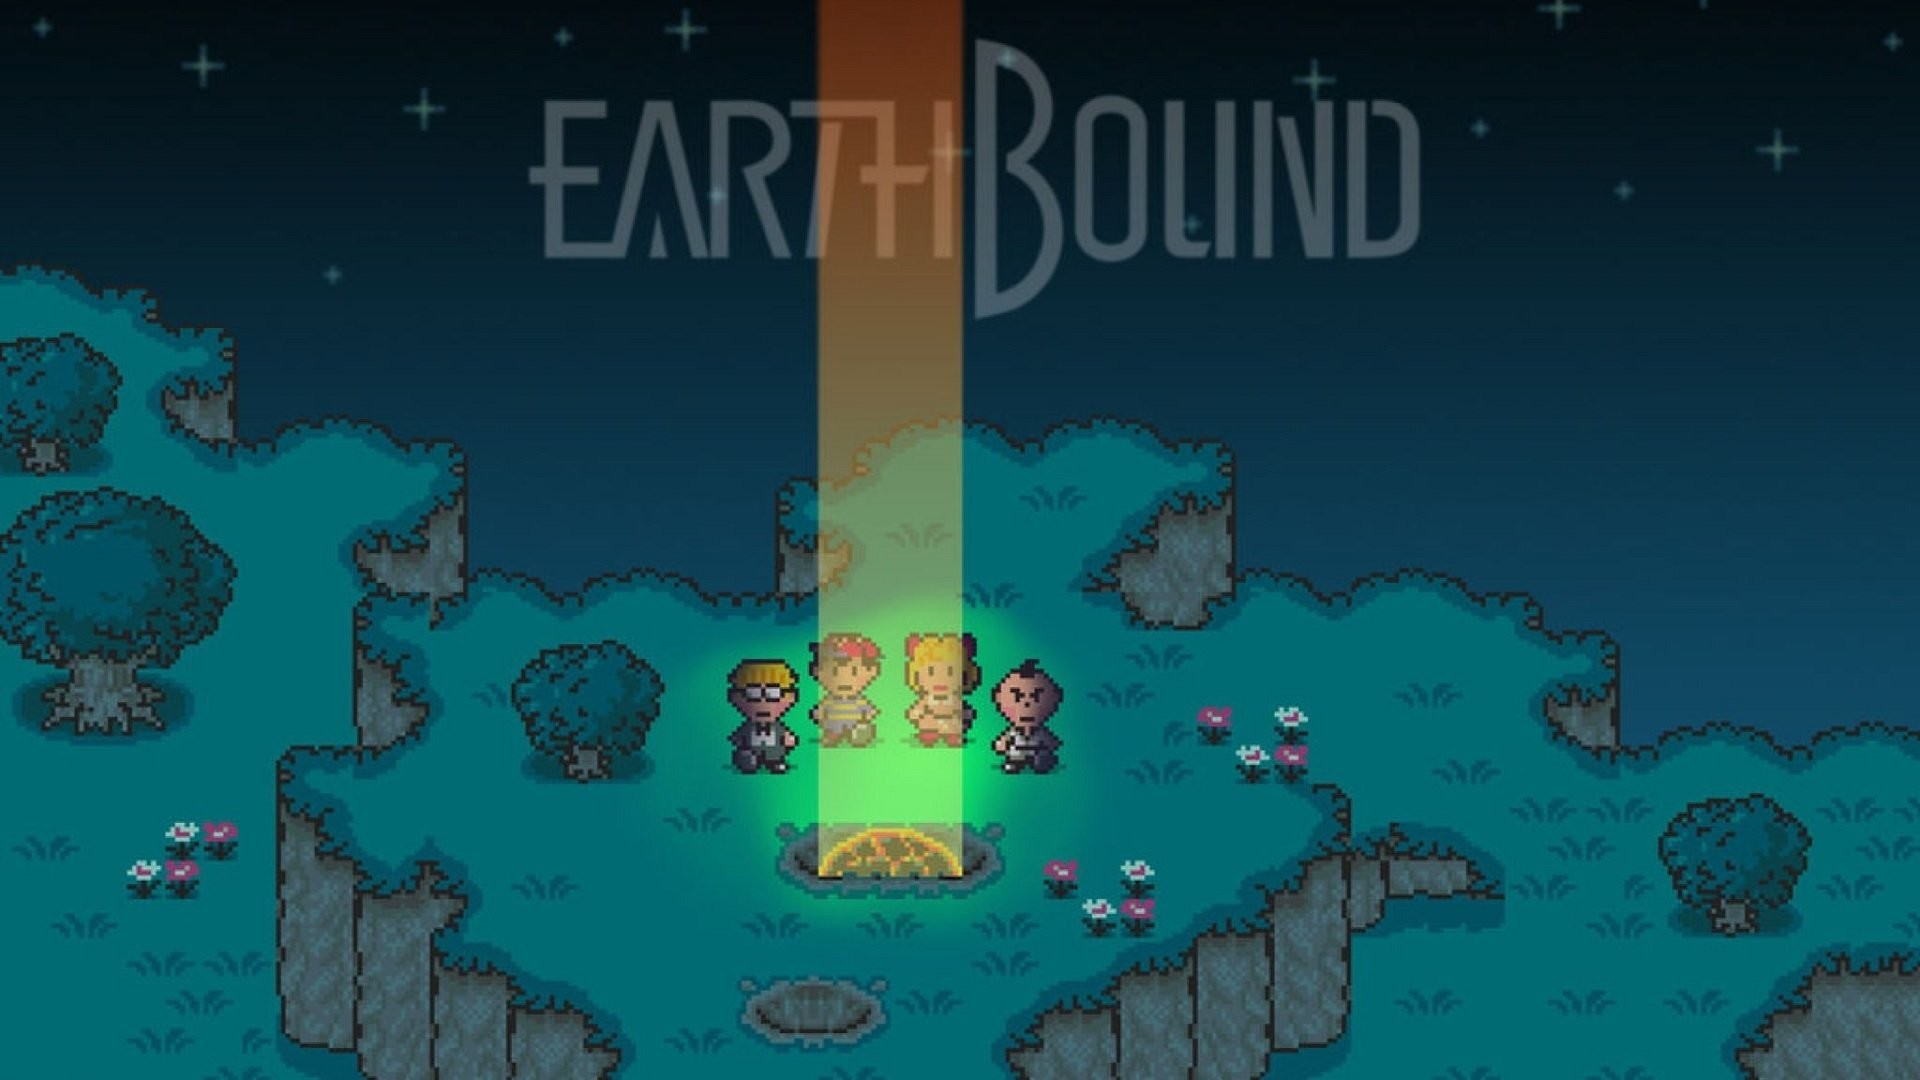 1920x1080 HD Wallpaper | Background ID:531960.  Video Game Earthbound